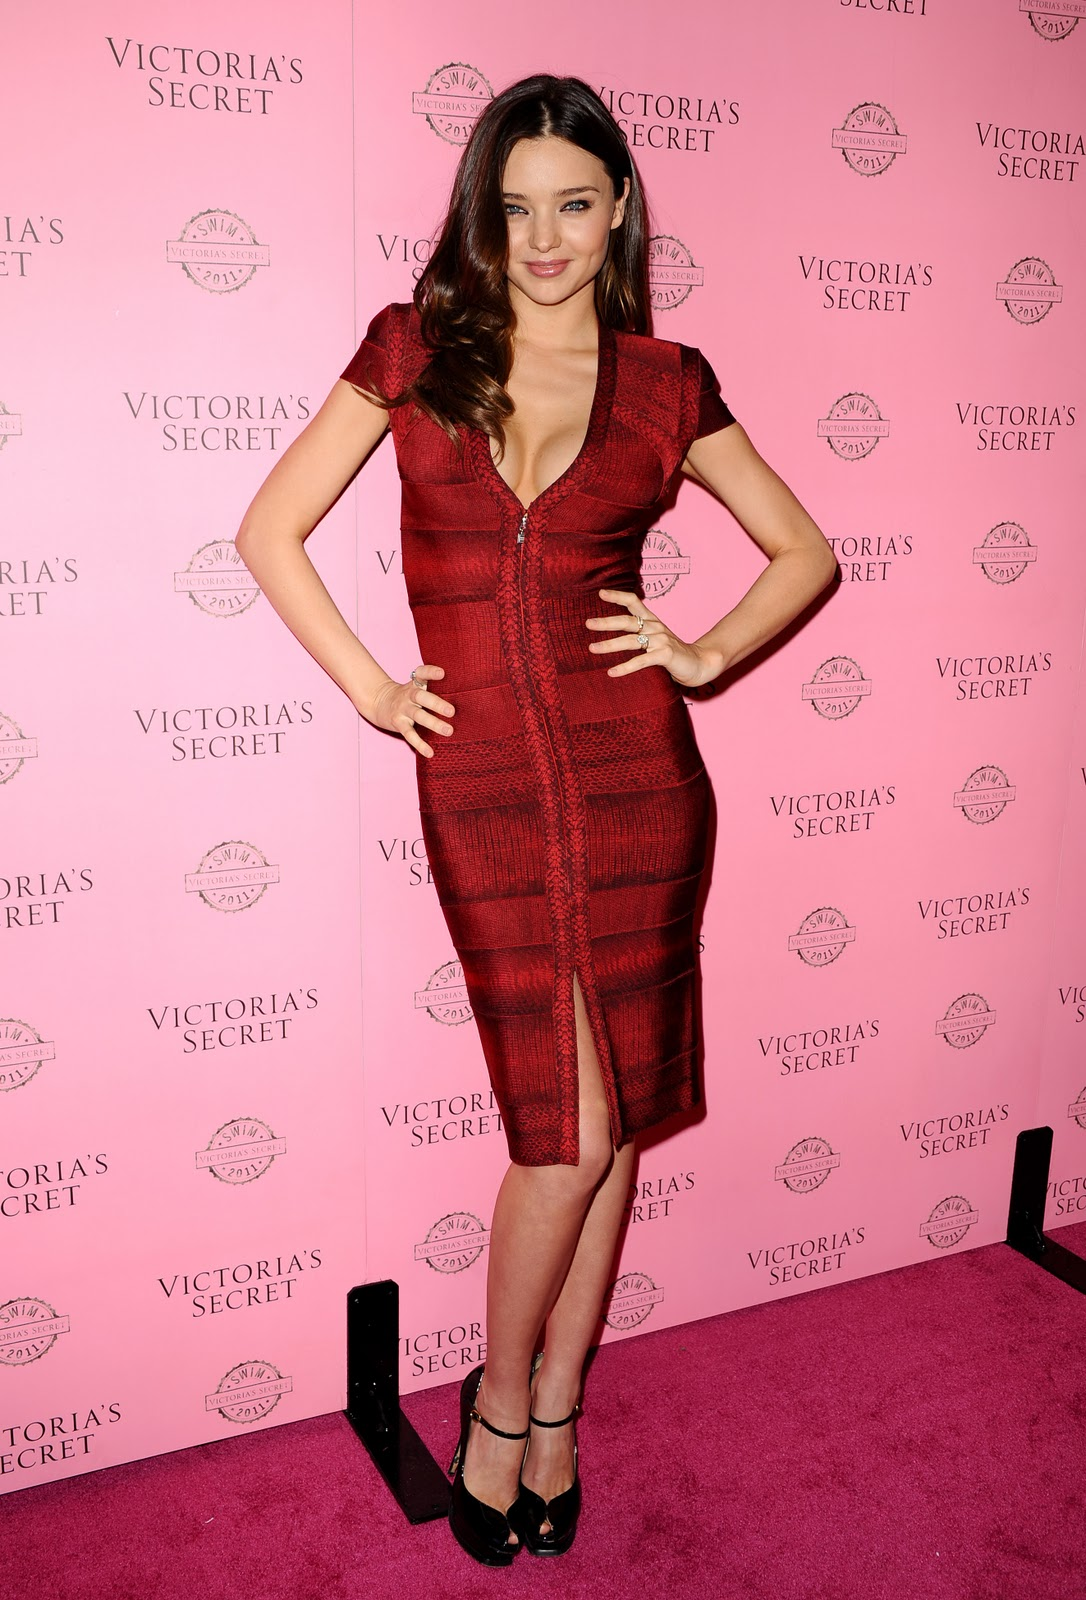 http://2.bp.blogspot.com/-GI7TgFPTOi4/TZTtIGx2F5I/AAAAAAAACNo/OIE4iYbHvvc/s1600/58629_Miranda_Kerr_Victorias_Secret_2011_SWIM_Collection_Launch_J0001_013_122_393lo.jpg